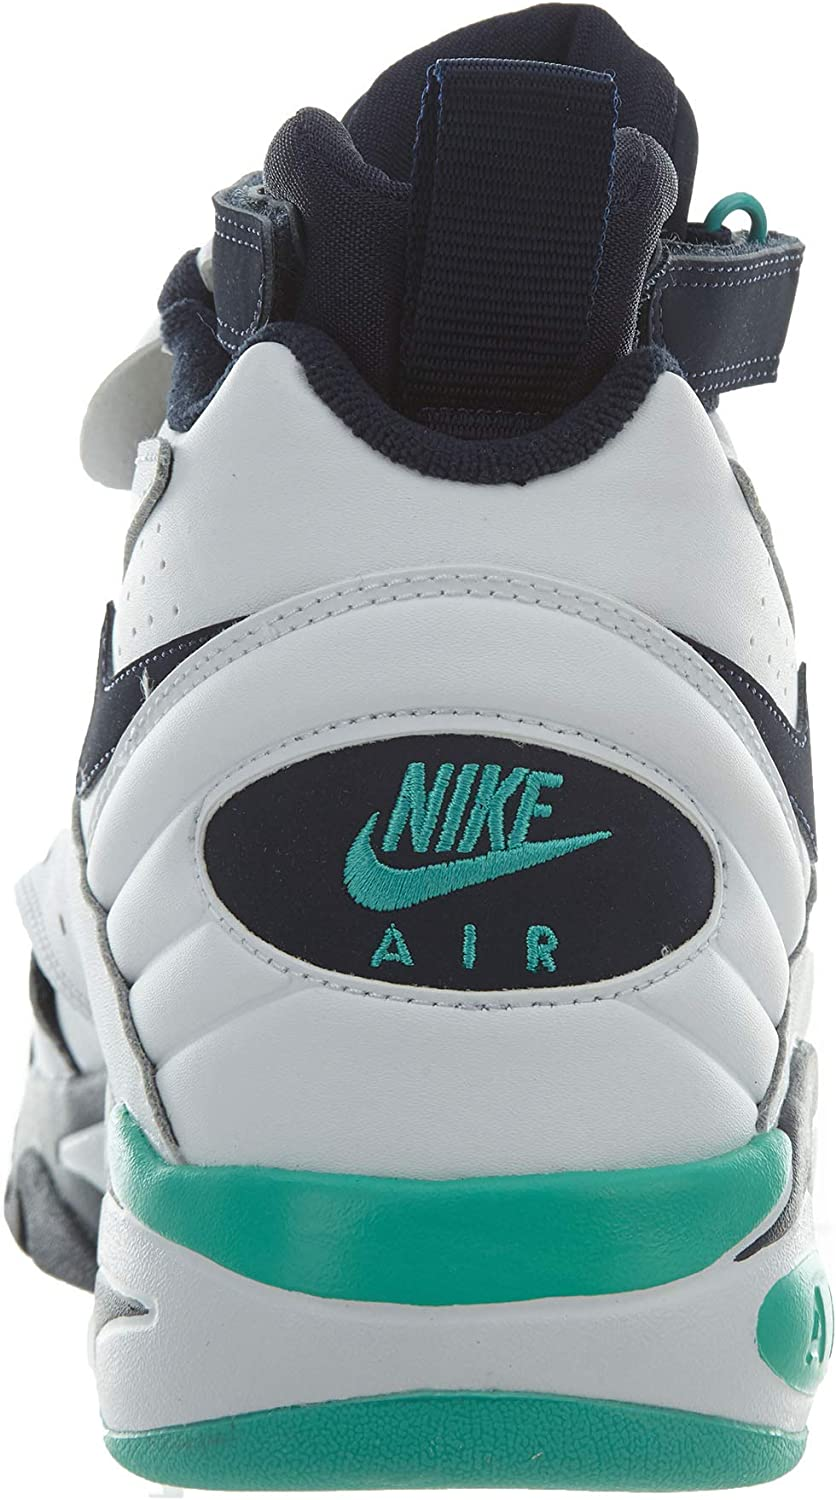 Nike Air Maestro II Limited Mens Basketball Shoes